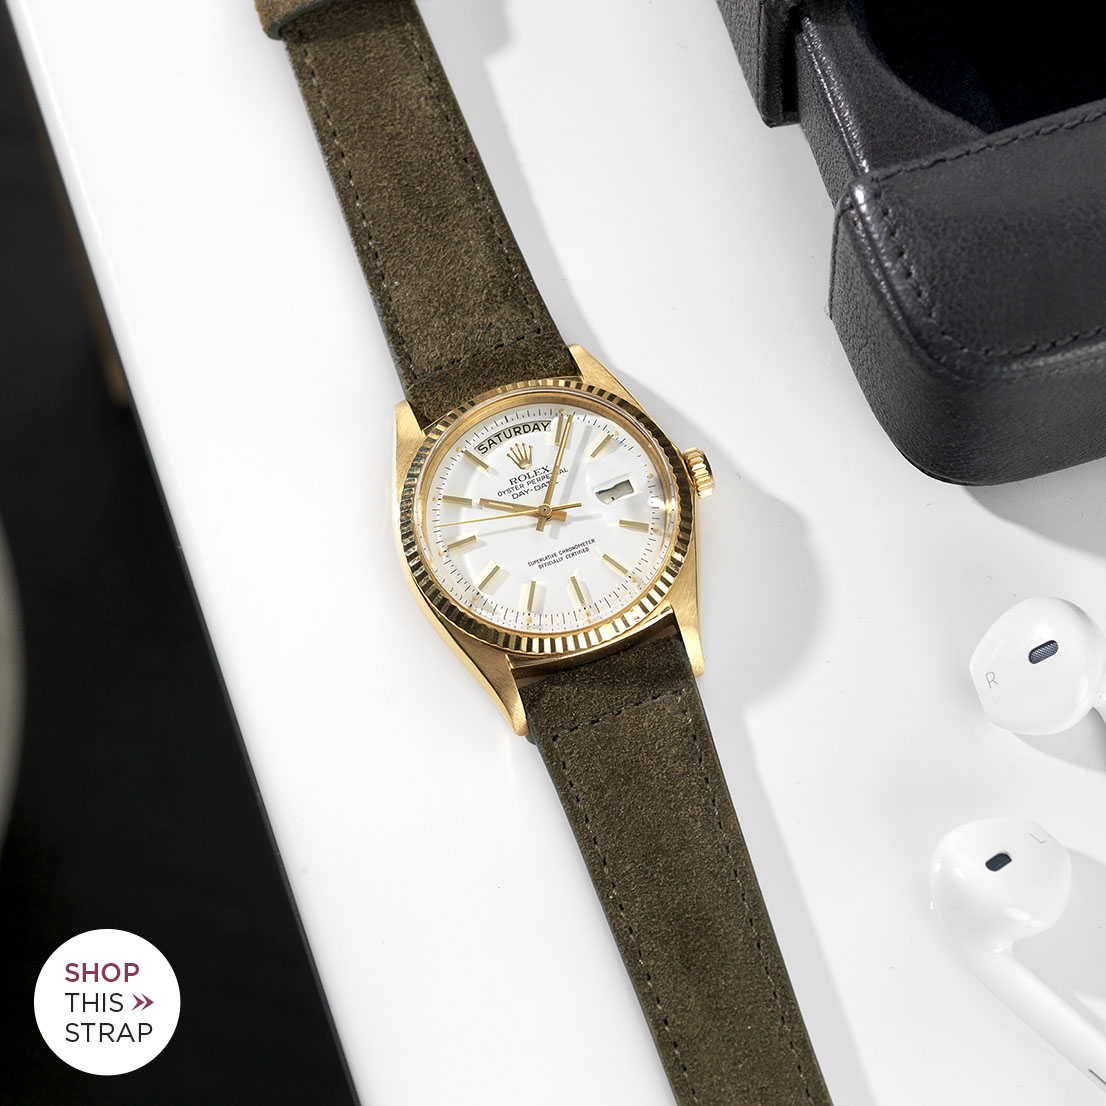 B&S Strap Guide Day Date Gold White Dial